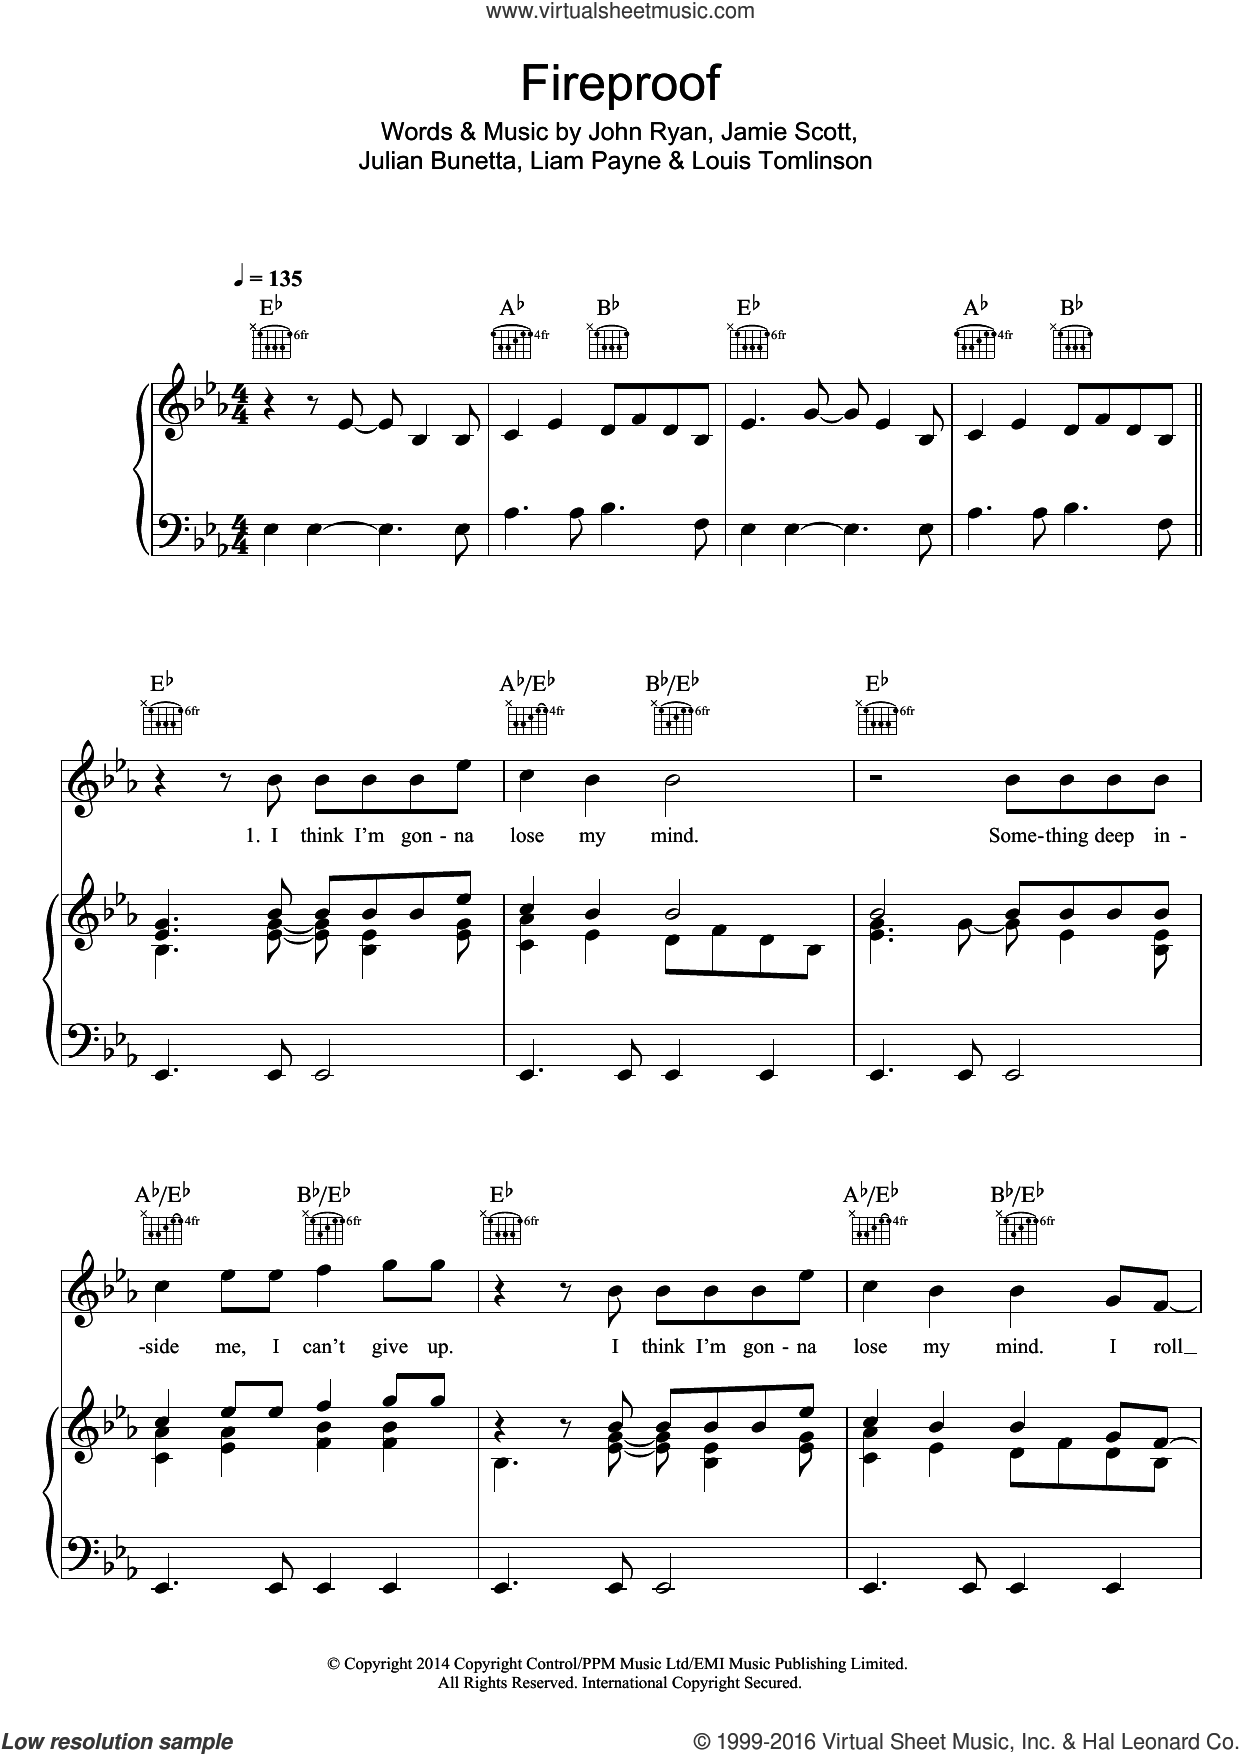 Fireproof sheet music for voice, piano or guitar by One Direction, Jamie Scott, John Ryan, Julian Bunetta, Liam Payne and Louis Tomlinson, intermediate skill level